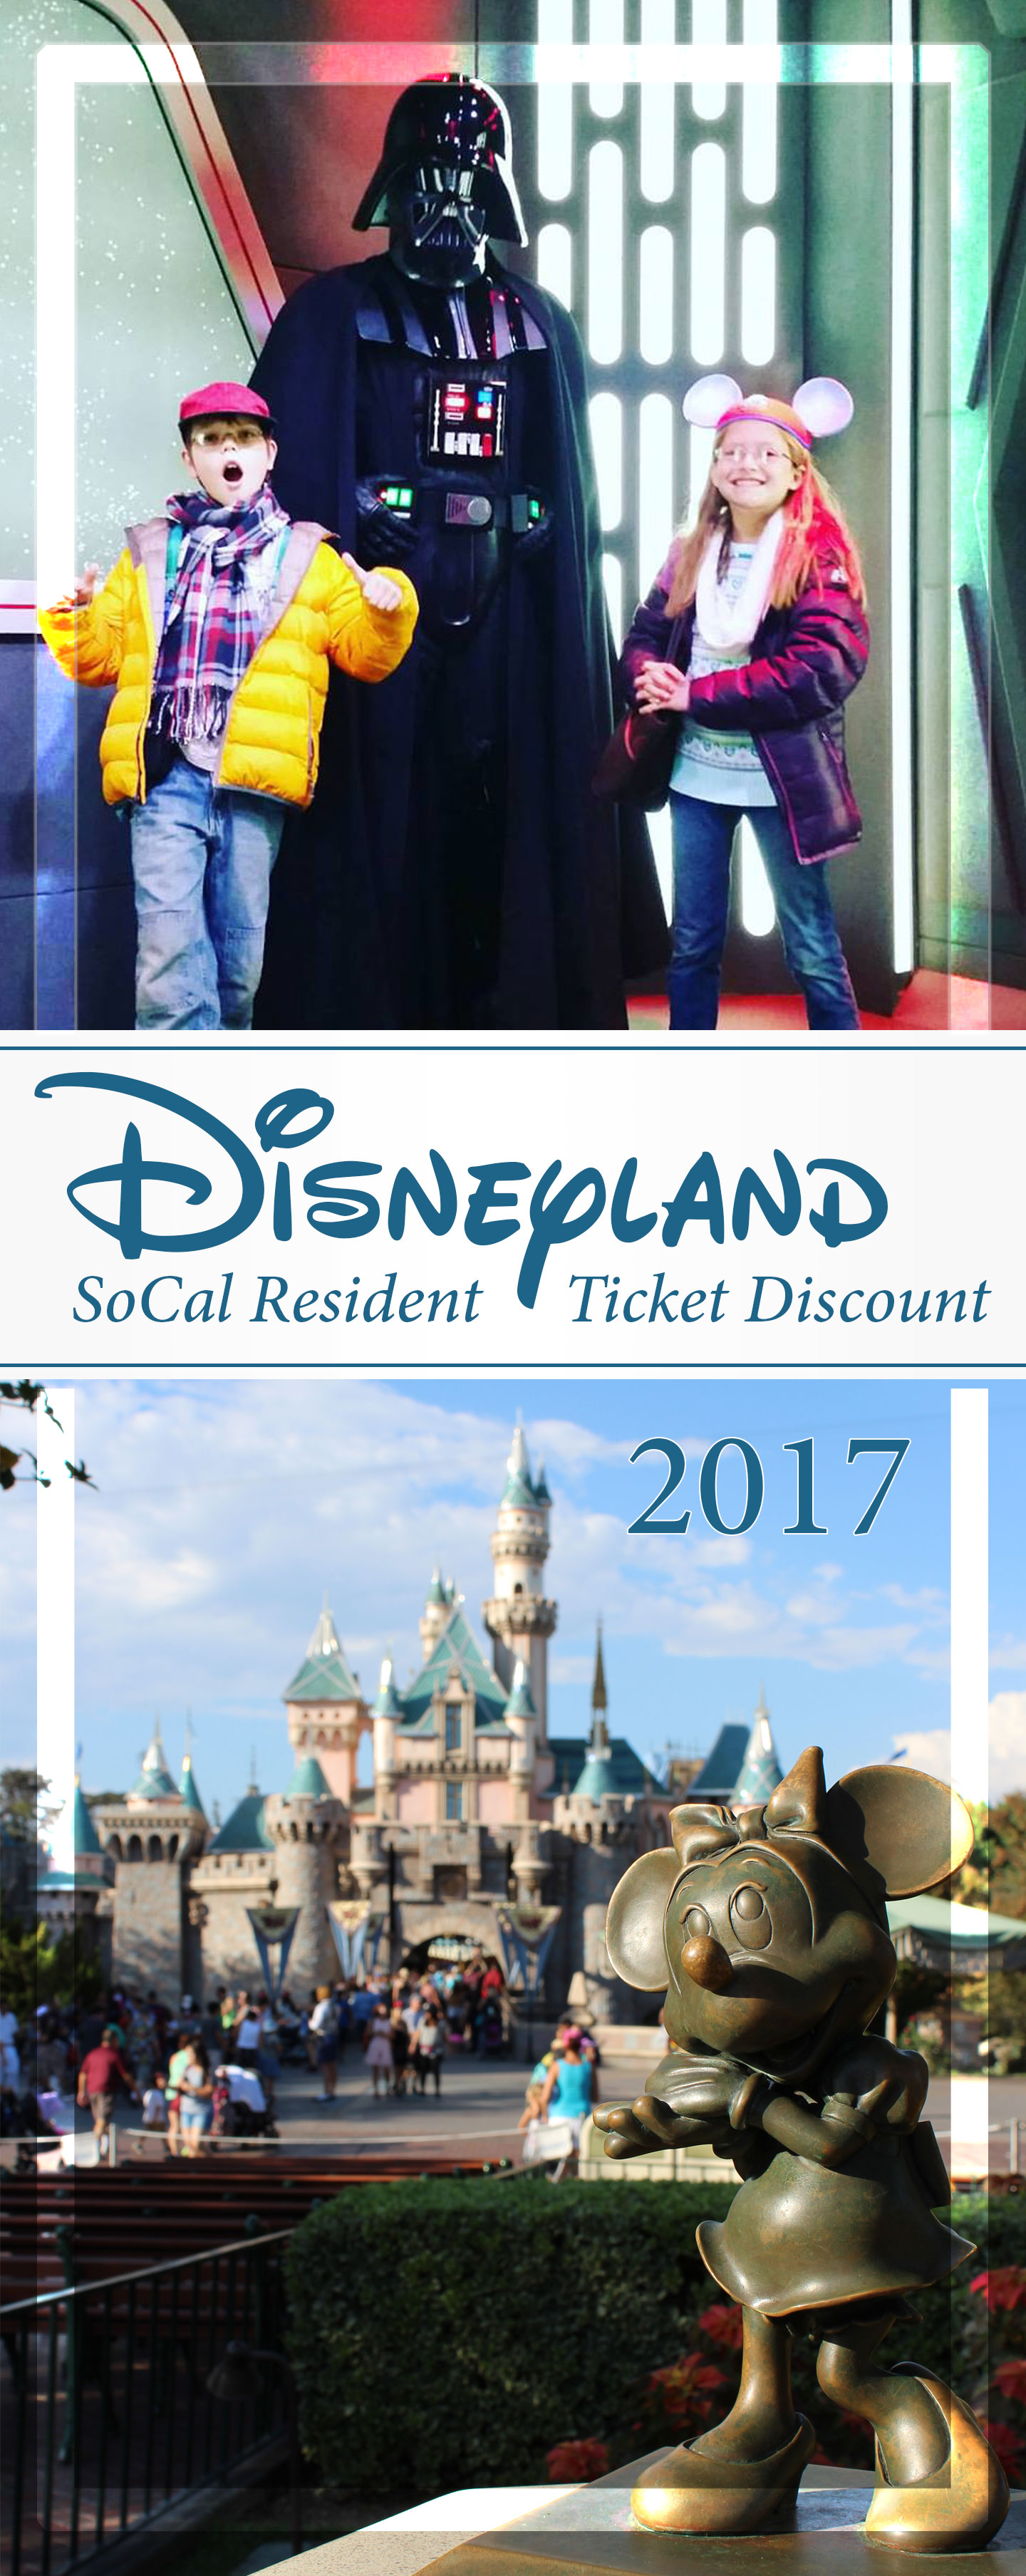 disneyland socal resident discount information